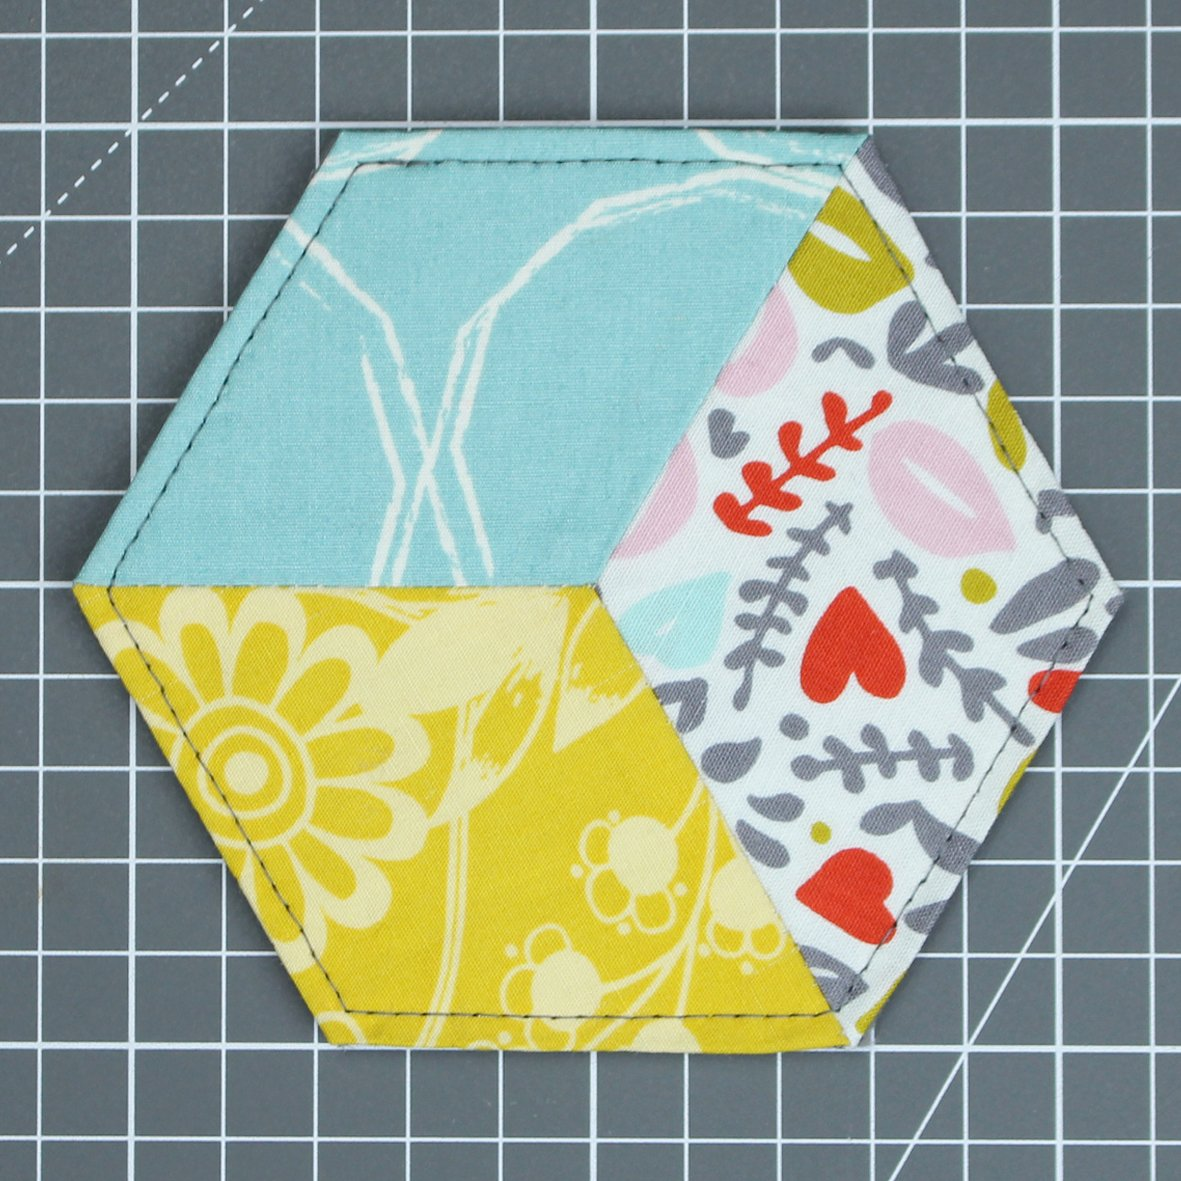 Pieced Fabric Coaster for Love Sewing issue 36